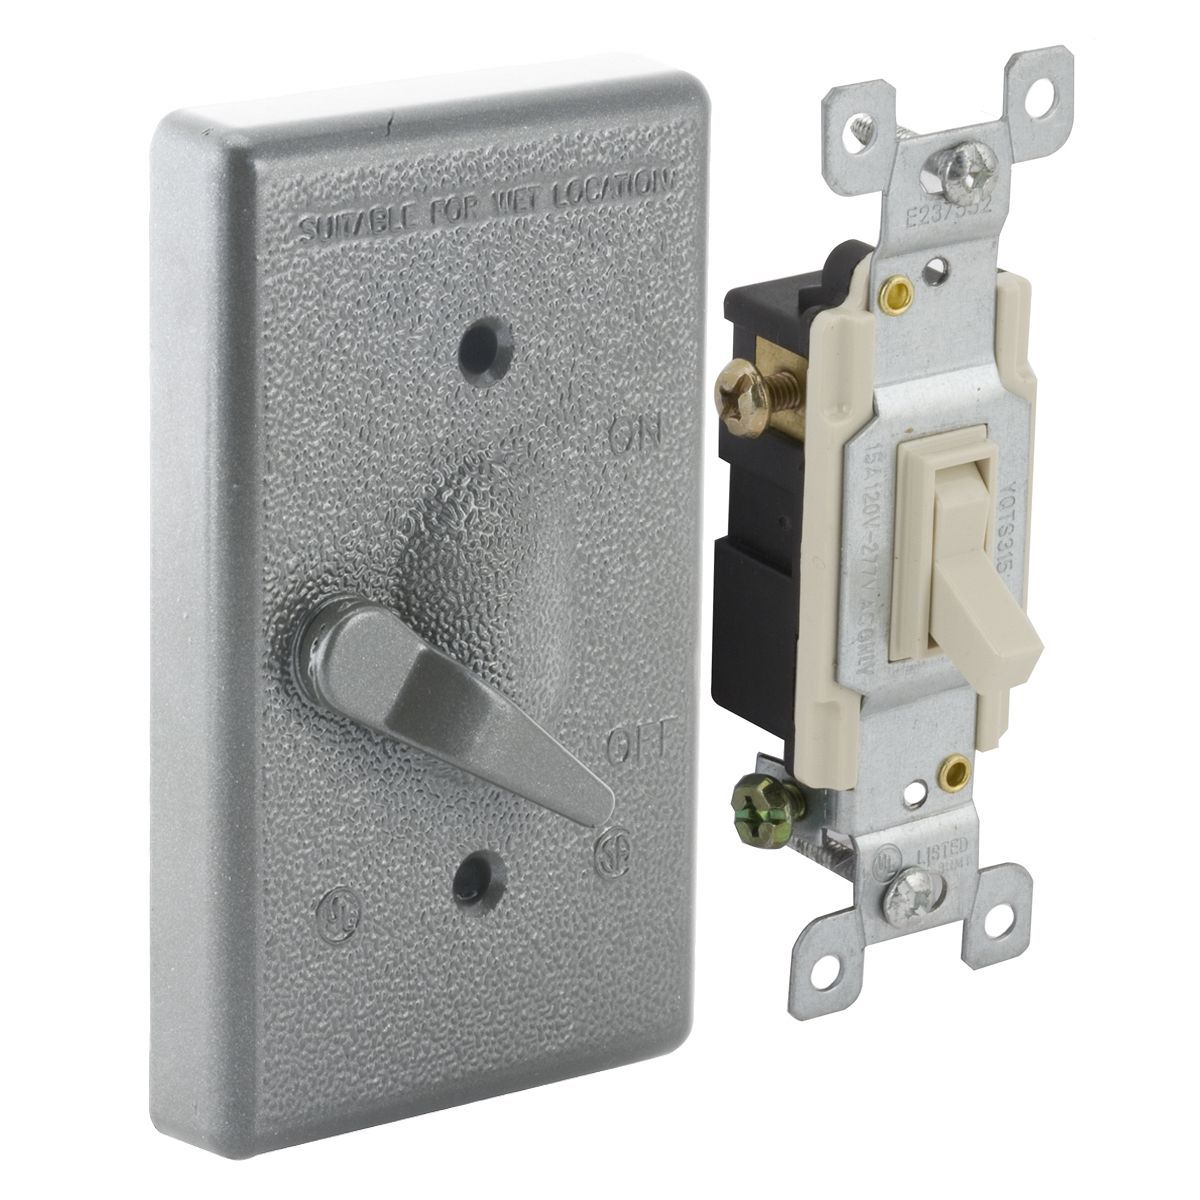 5 Switch Outlet Cover Raco 51415 3 Way Single Gang Vertical Mounted Switch Cover